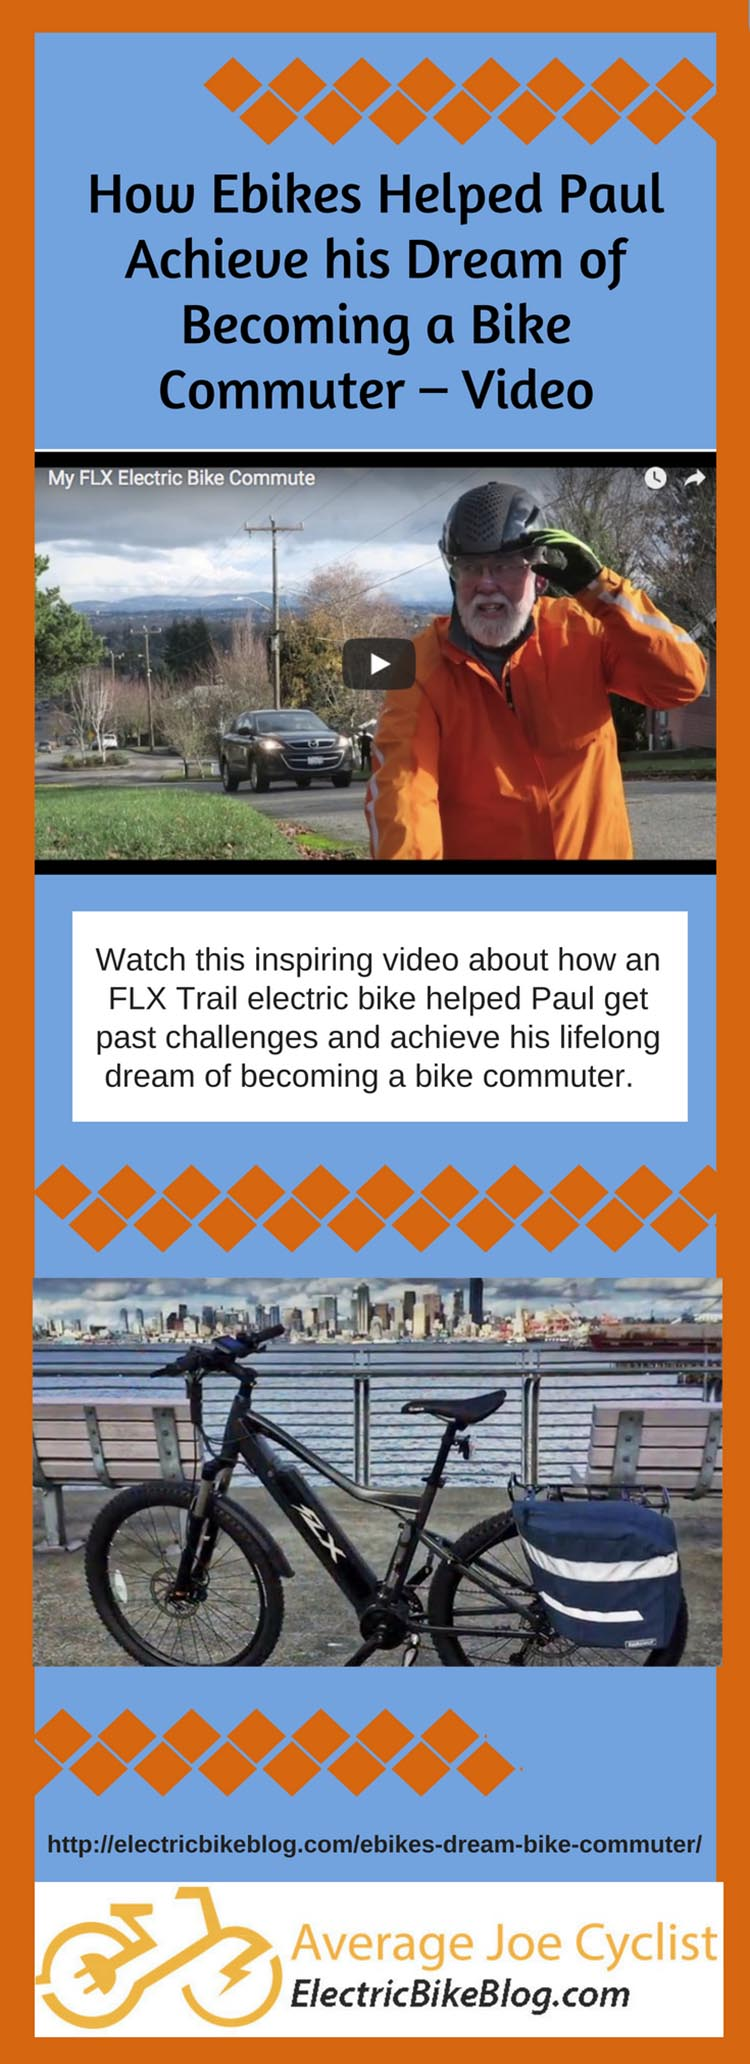 How Ebikes Helped Paul Achieve his Dream of Becoming a Bike Commuter - Video